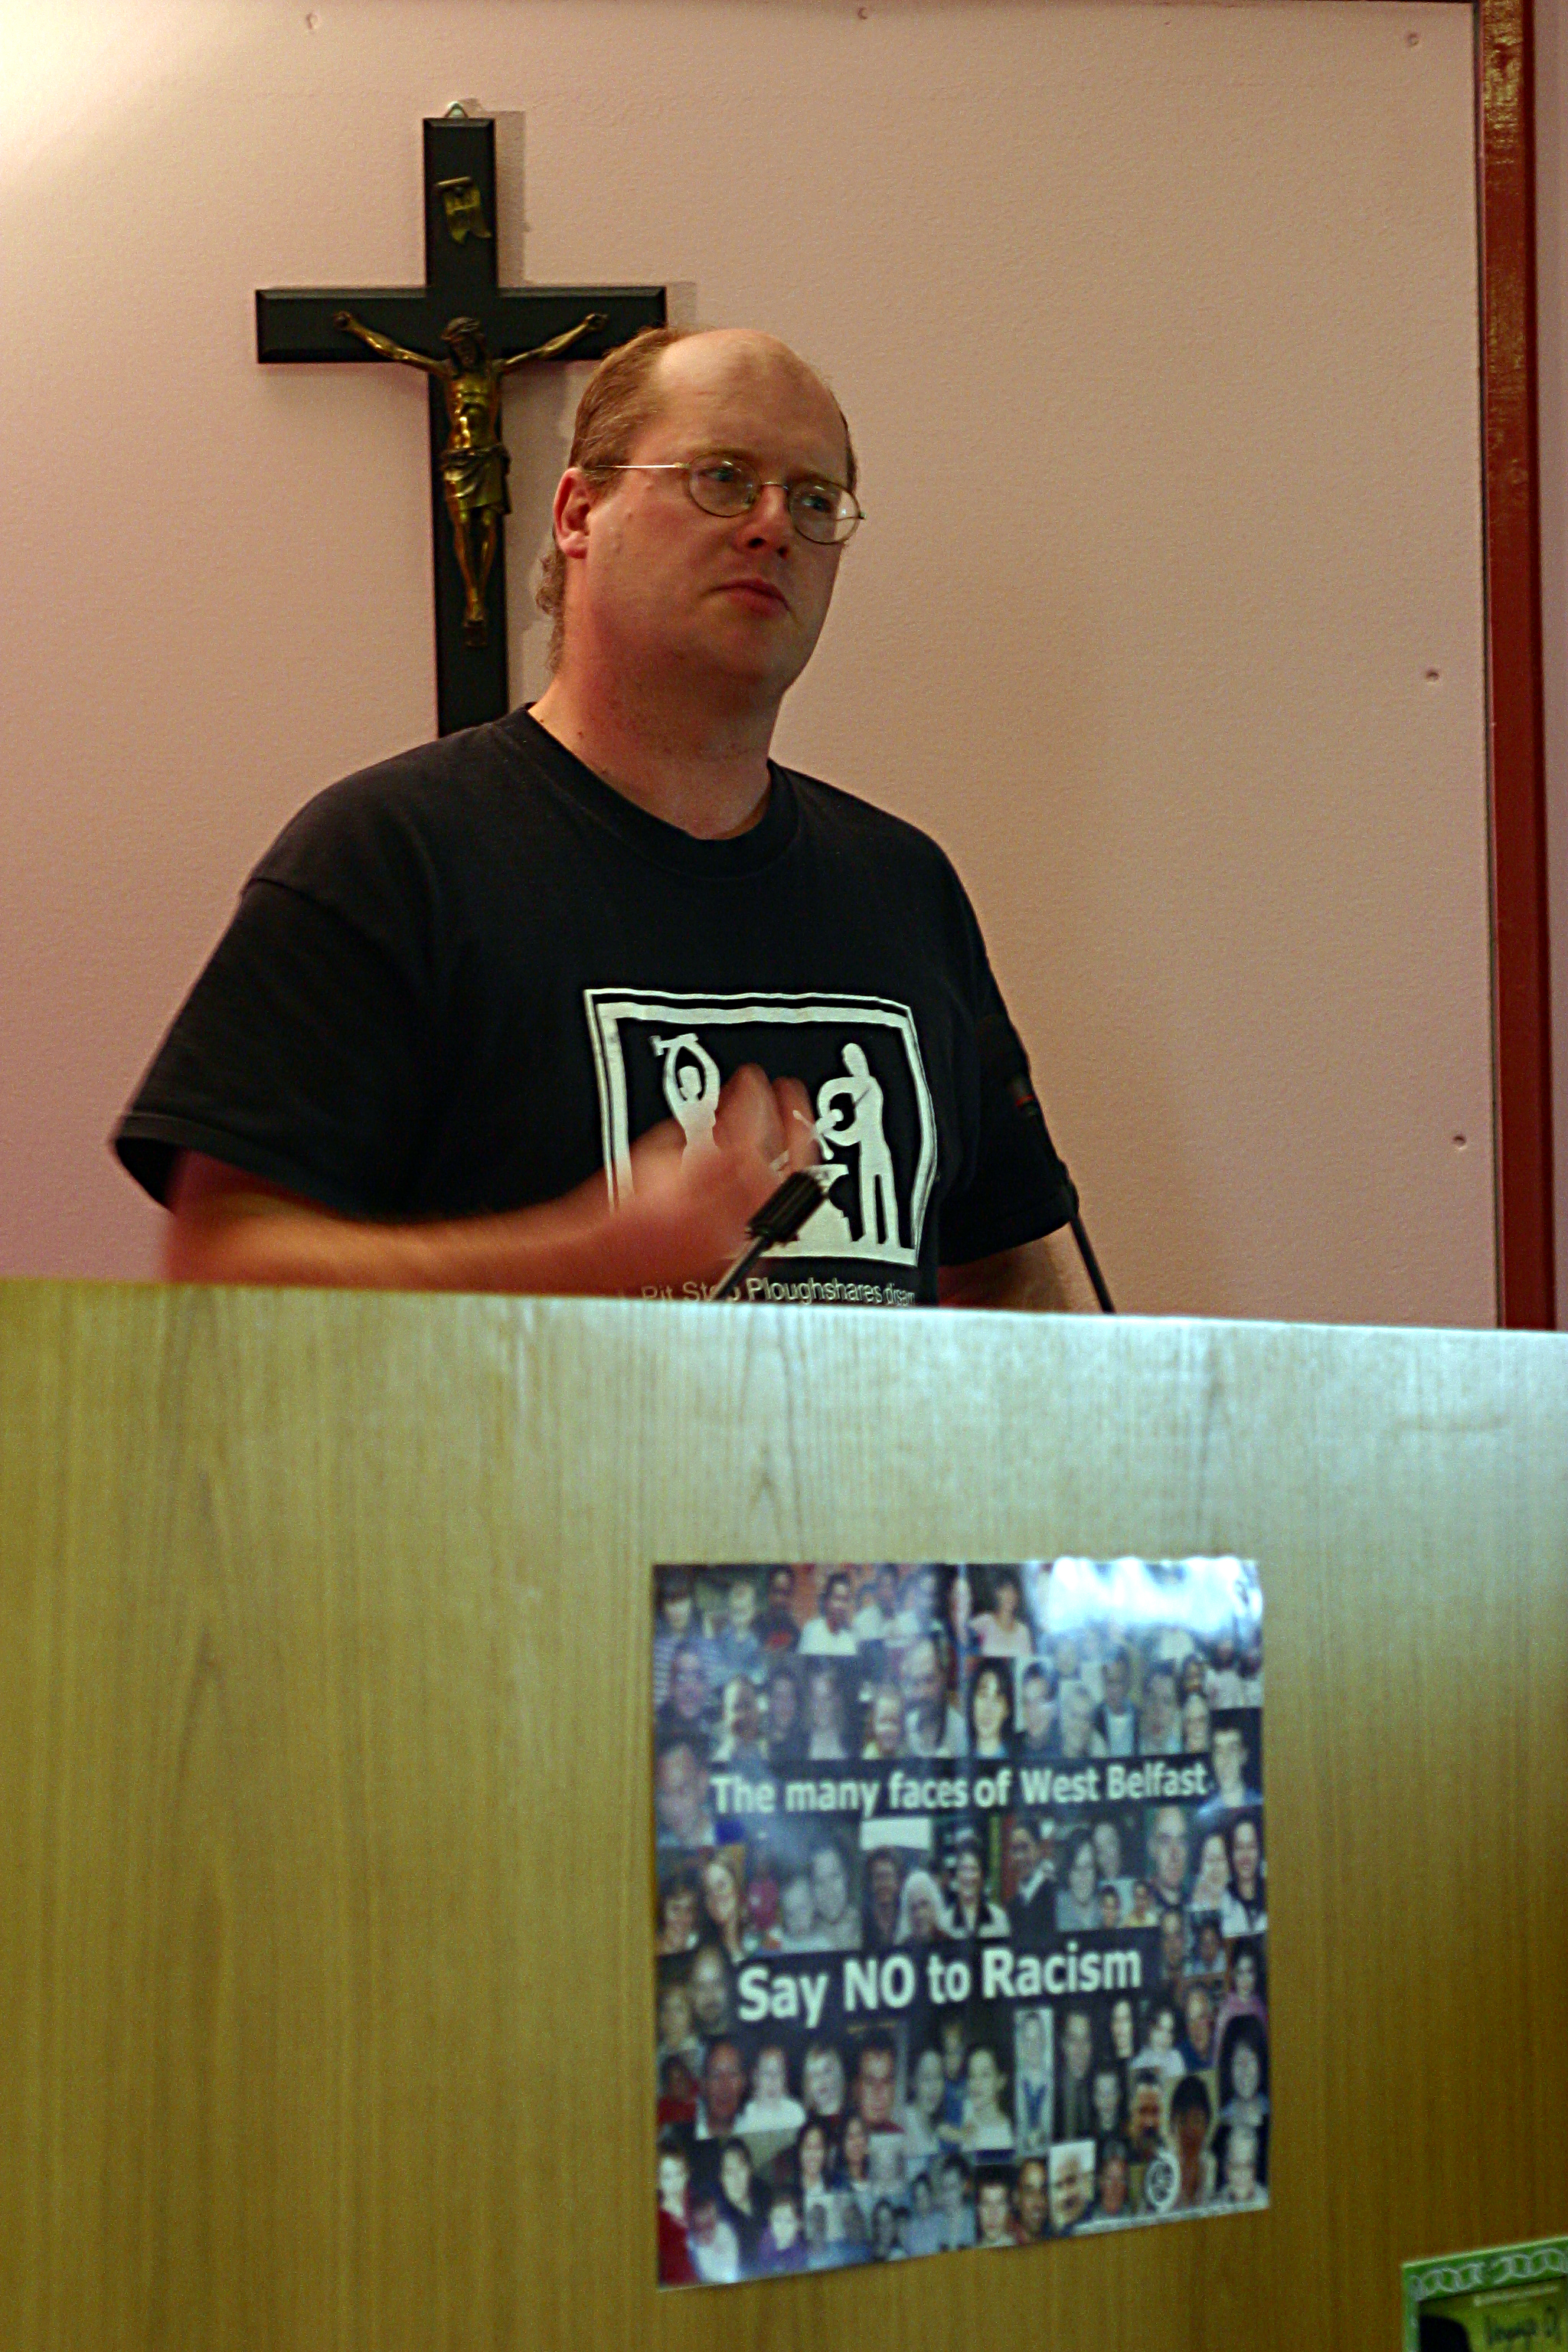 dr-robbie-mcveigh-speaking-at-warns-feile-event-july-2004